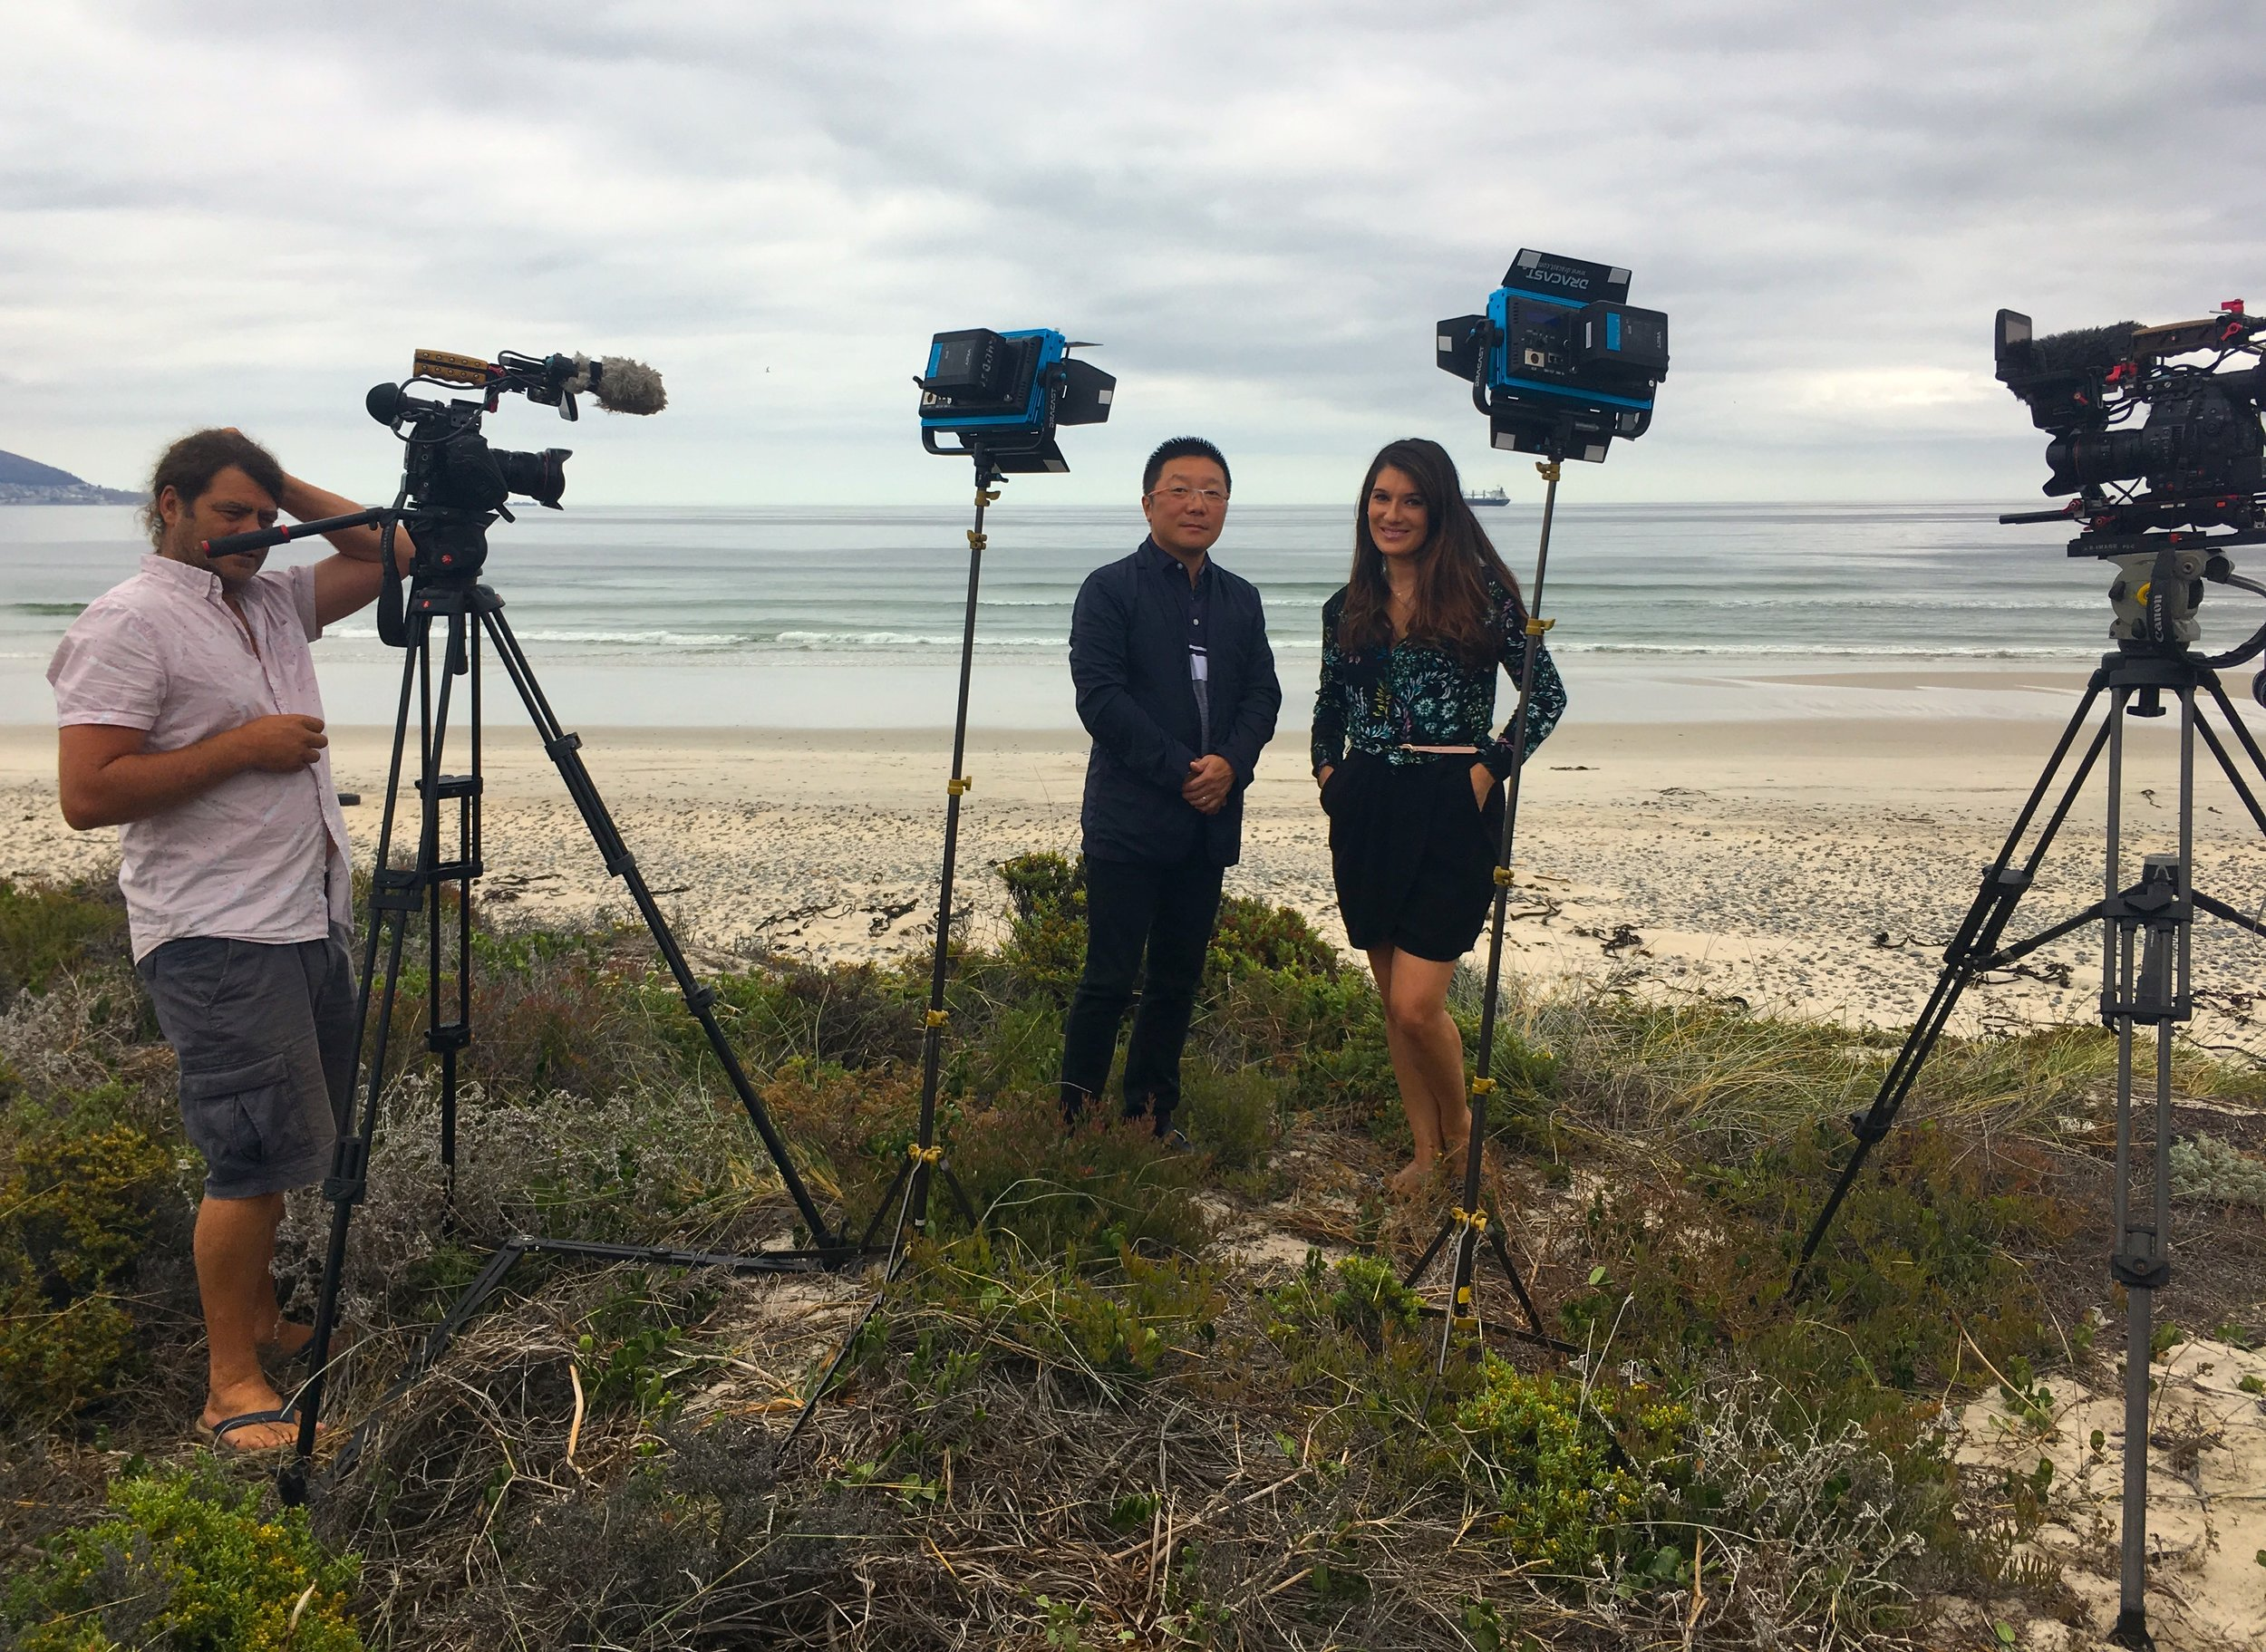 Filming the founder and Managing Director of China International Travel Agency of South Africa, Jacky Liu, with CNN Africa Business Correspondent Eleni Giokos at Sunset Beach in Blouberg for CNN Business Traveller. The subject this time was how Africa was engaging with the Chinese travel market. It was broadcast in March 2019.